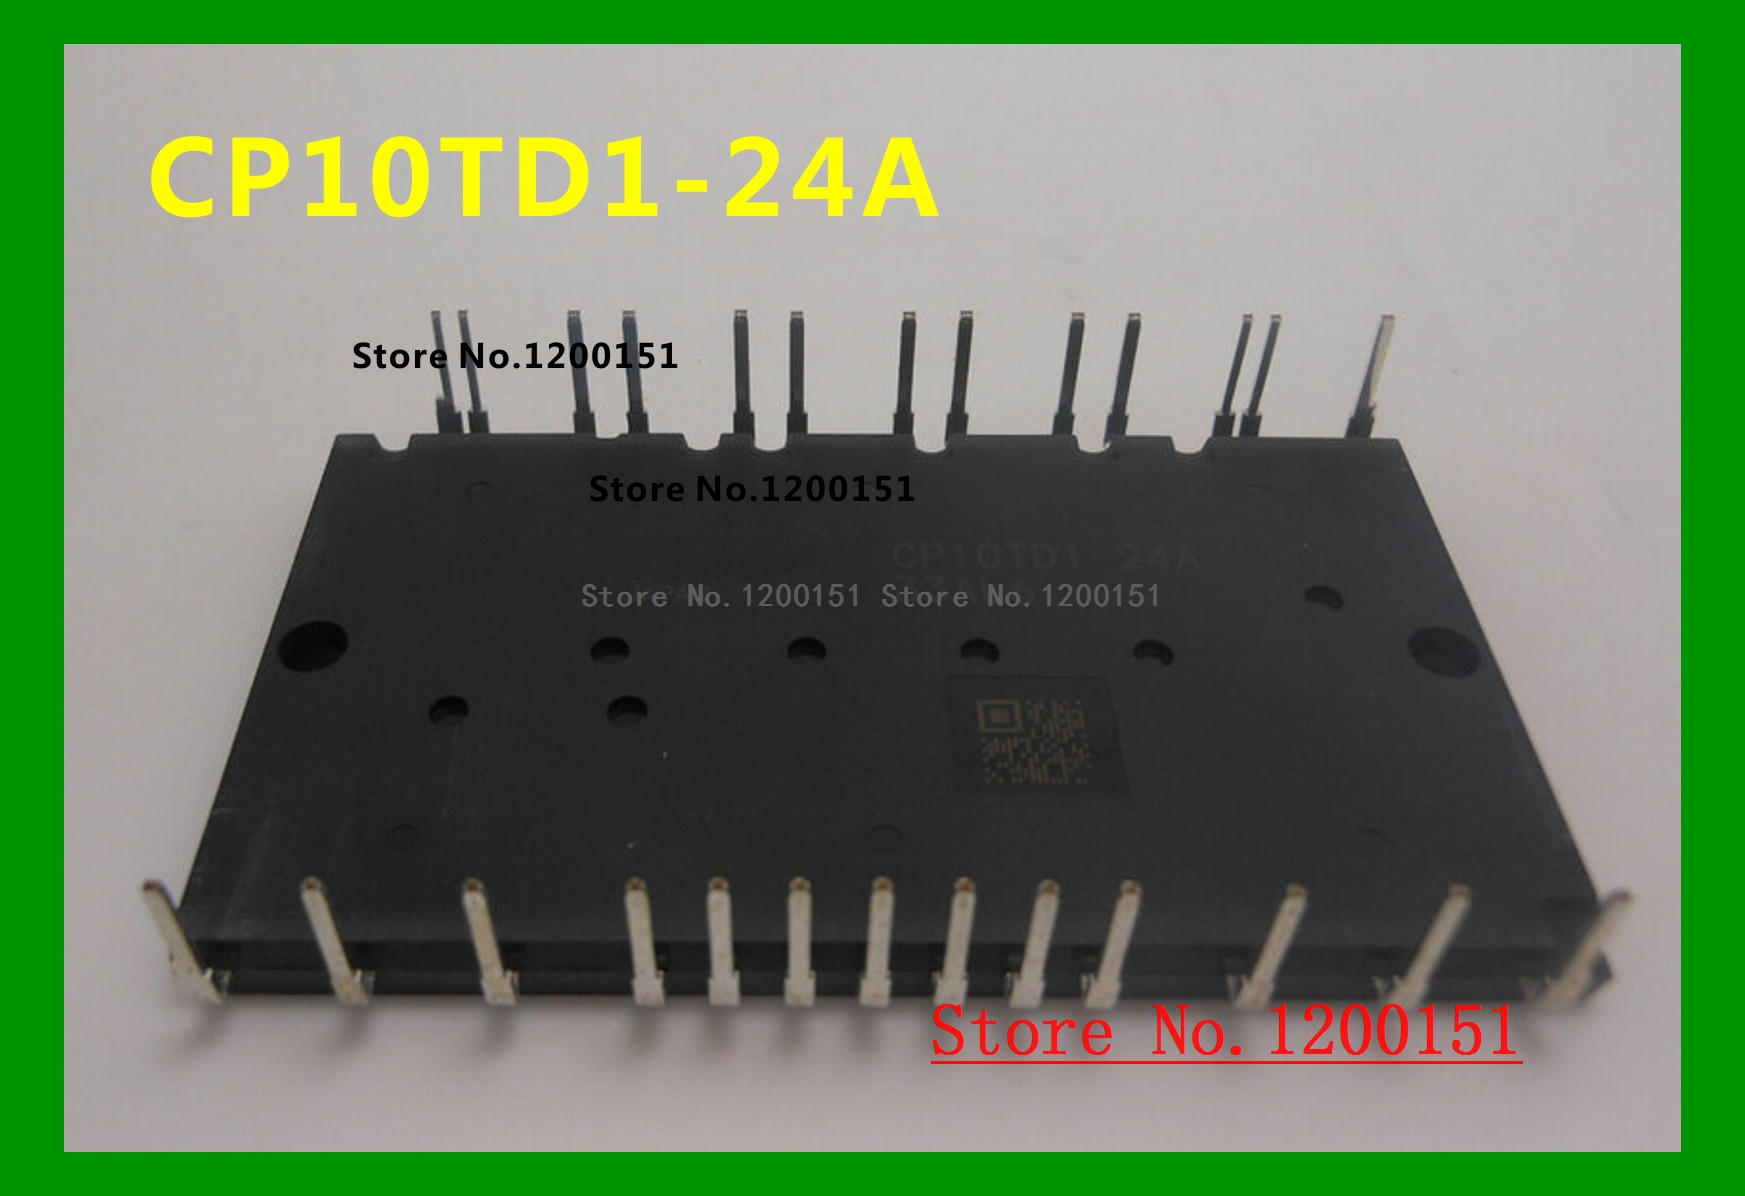 CP10TD1 24A CP15TD1 24A CP15TD1 24Y CP25TD1 24A CP25TD1 24Y  CP30TD1 12A CP50TD1 12Y CP5TD1 24A MODULES-in Integrated Circuits from Electronic Components & Supplies